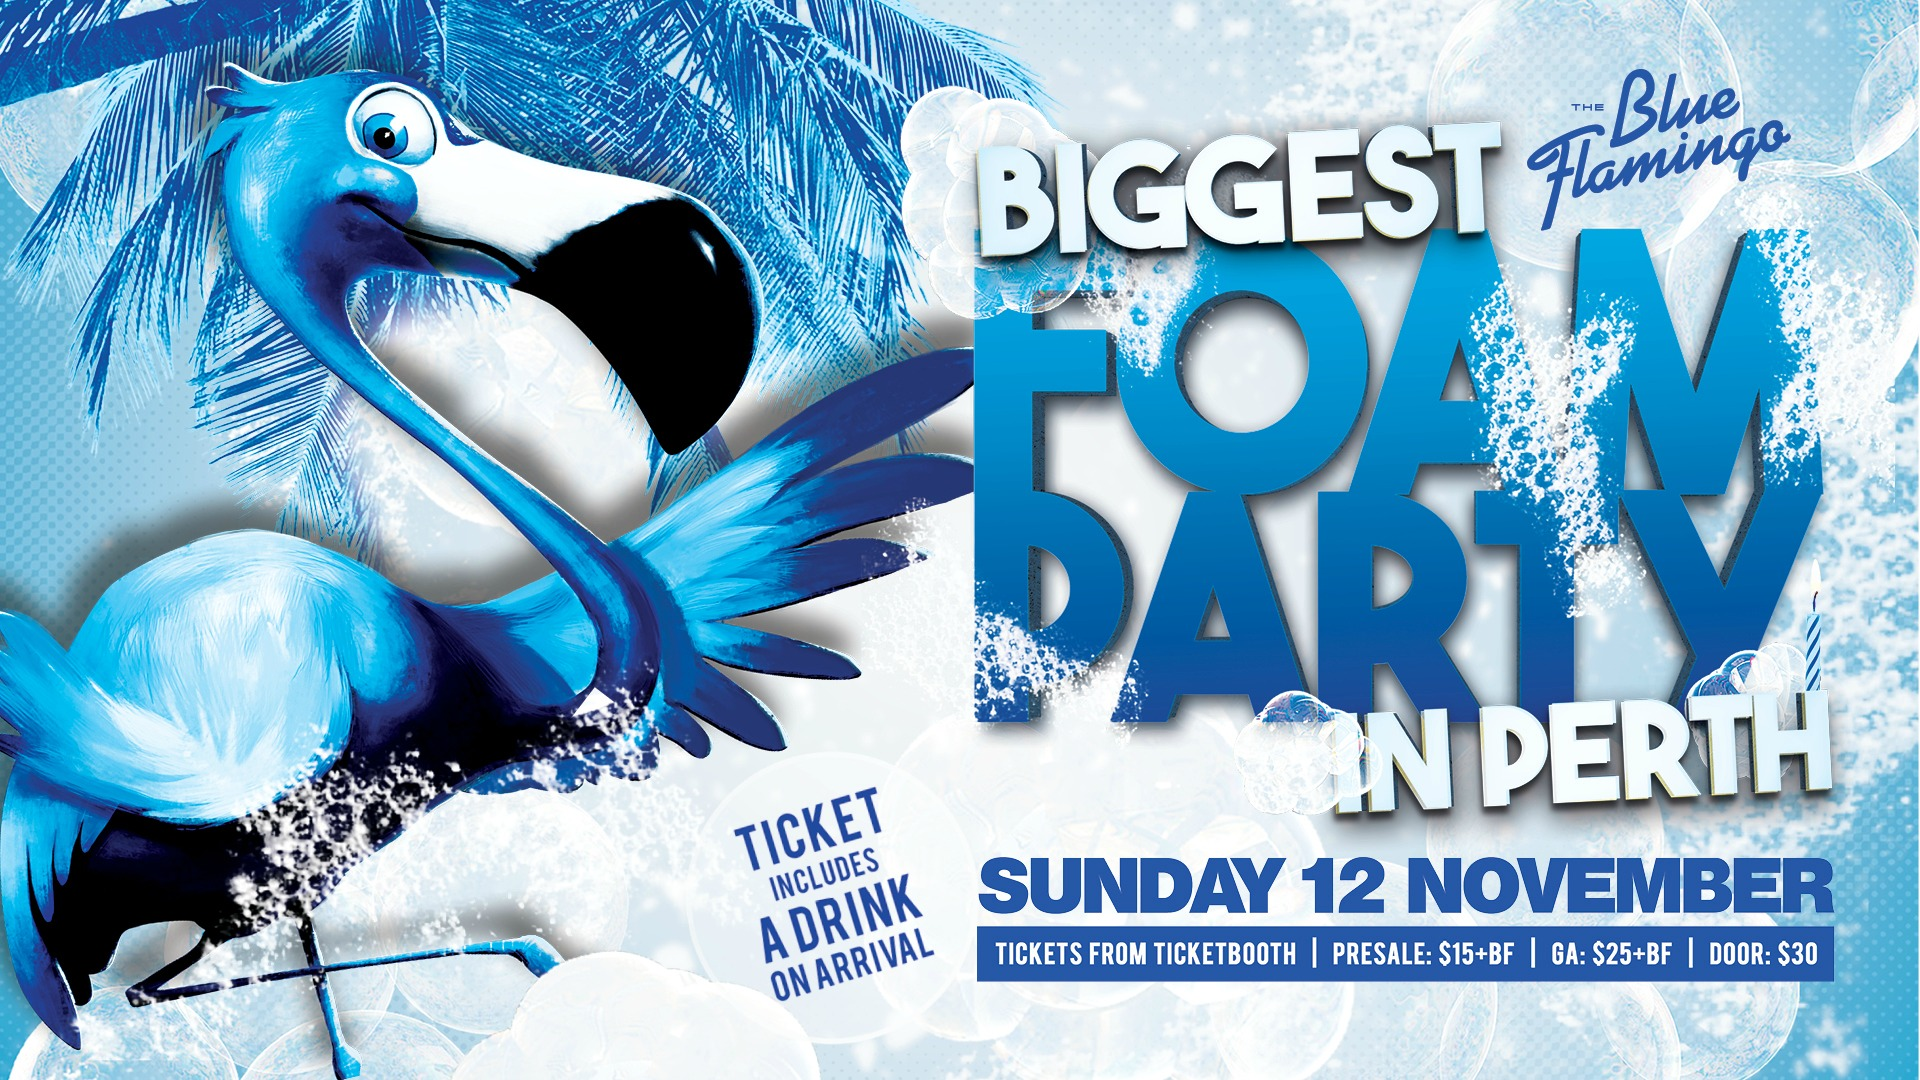 Tickets for Biggest FOAM PARTY in Perth in Leederville from Ticketbooth